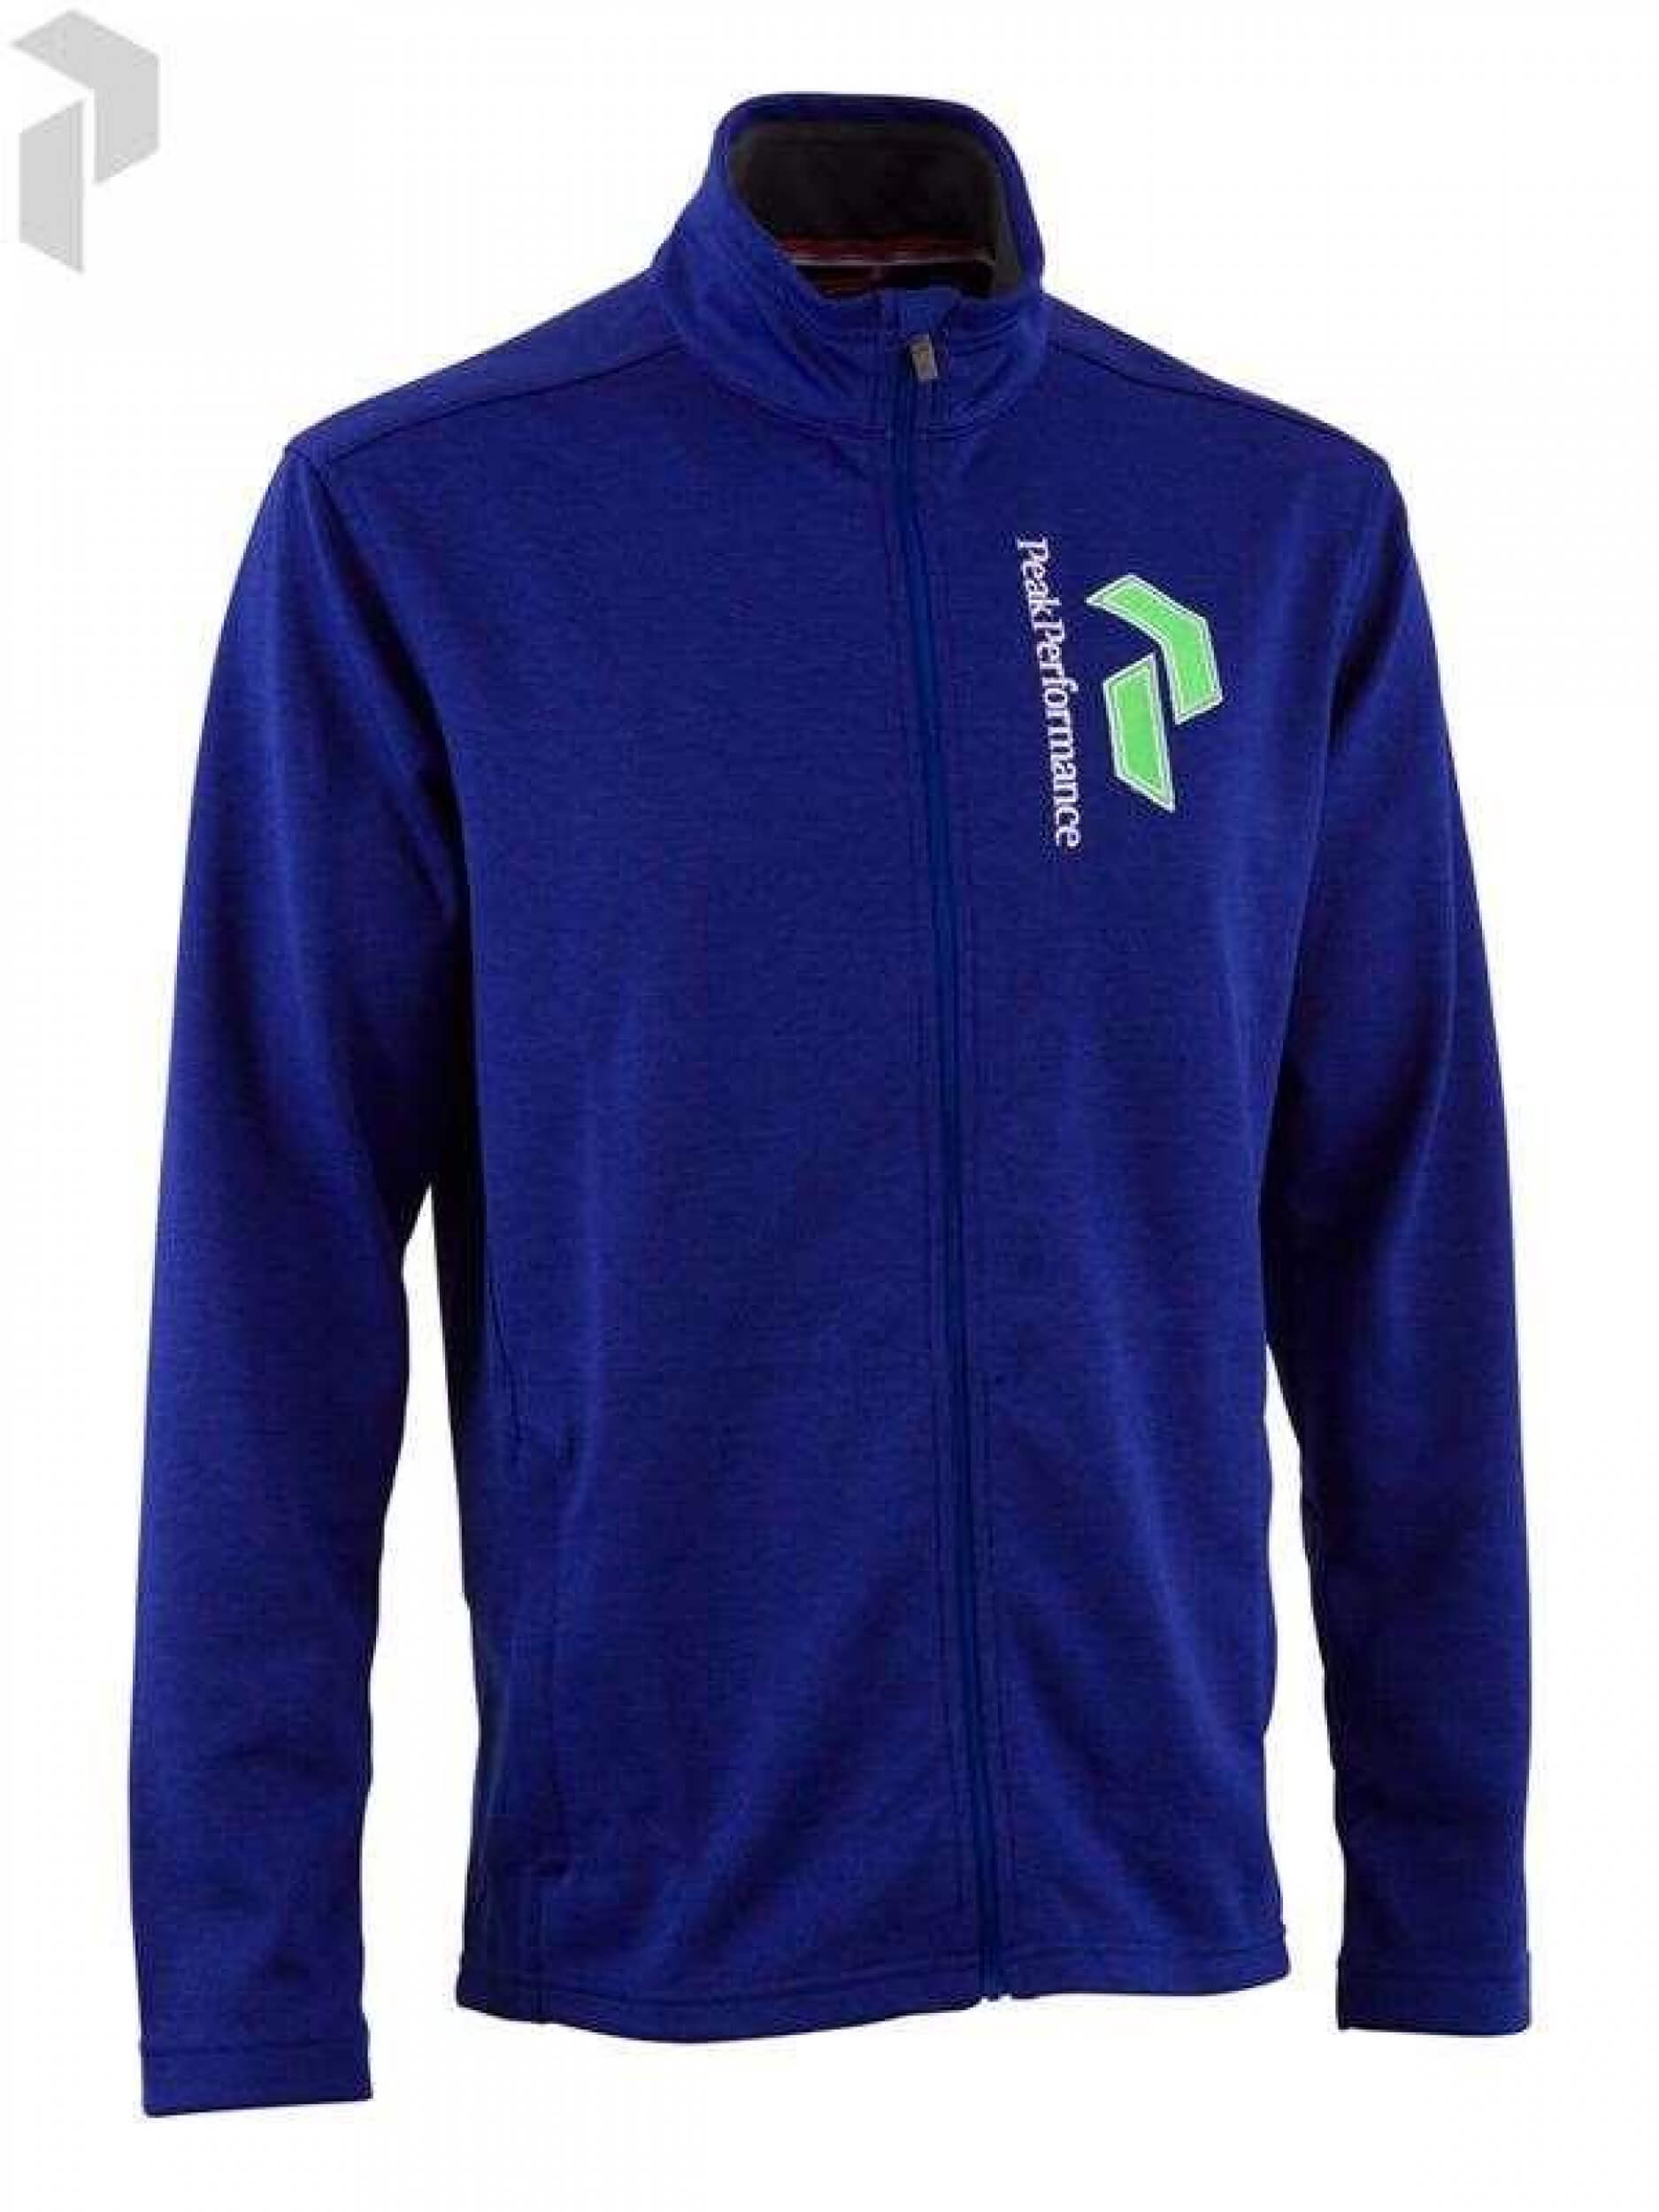 Peak Performance Herren Sweat-Jacke G BIRN.MID blau 26T